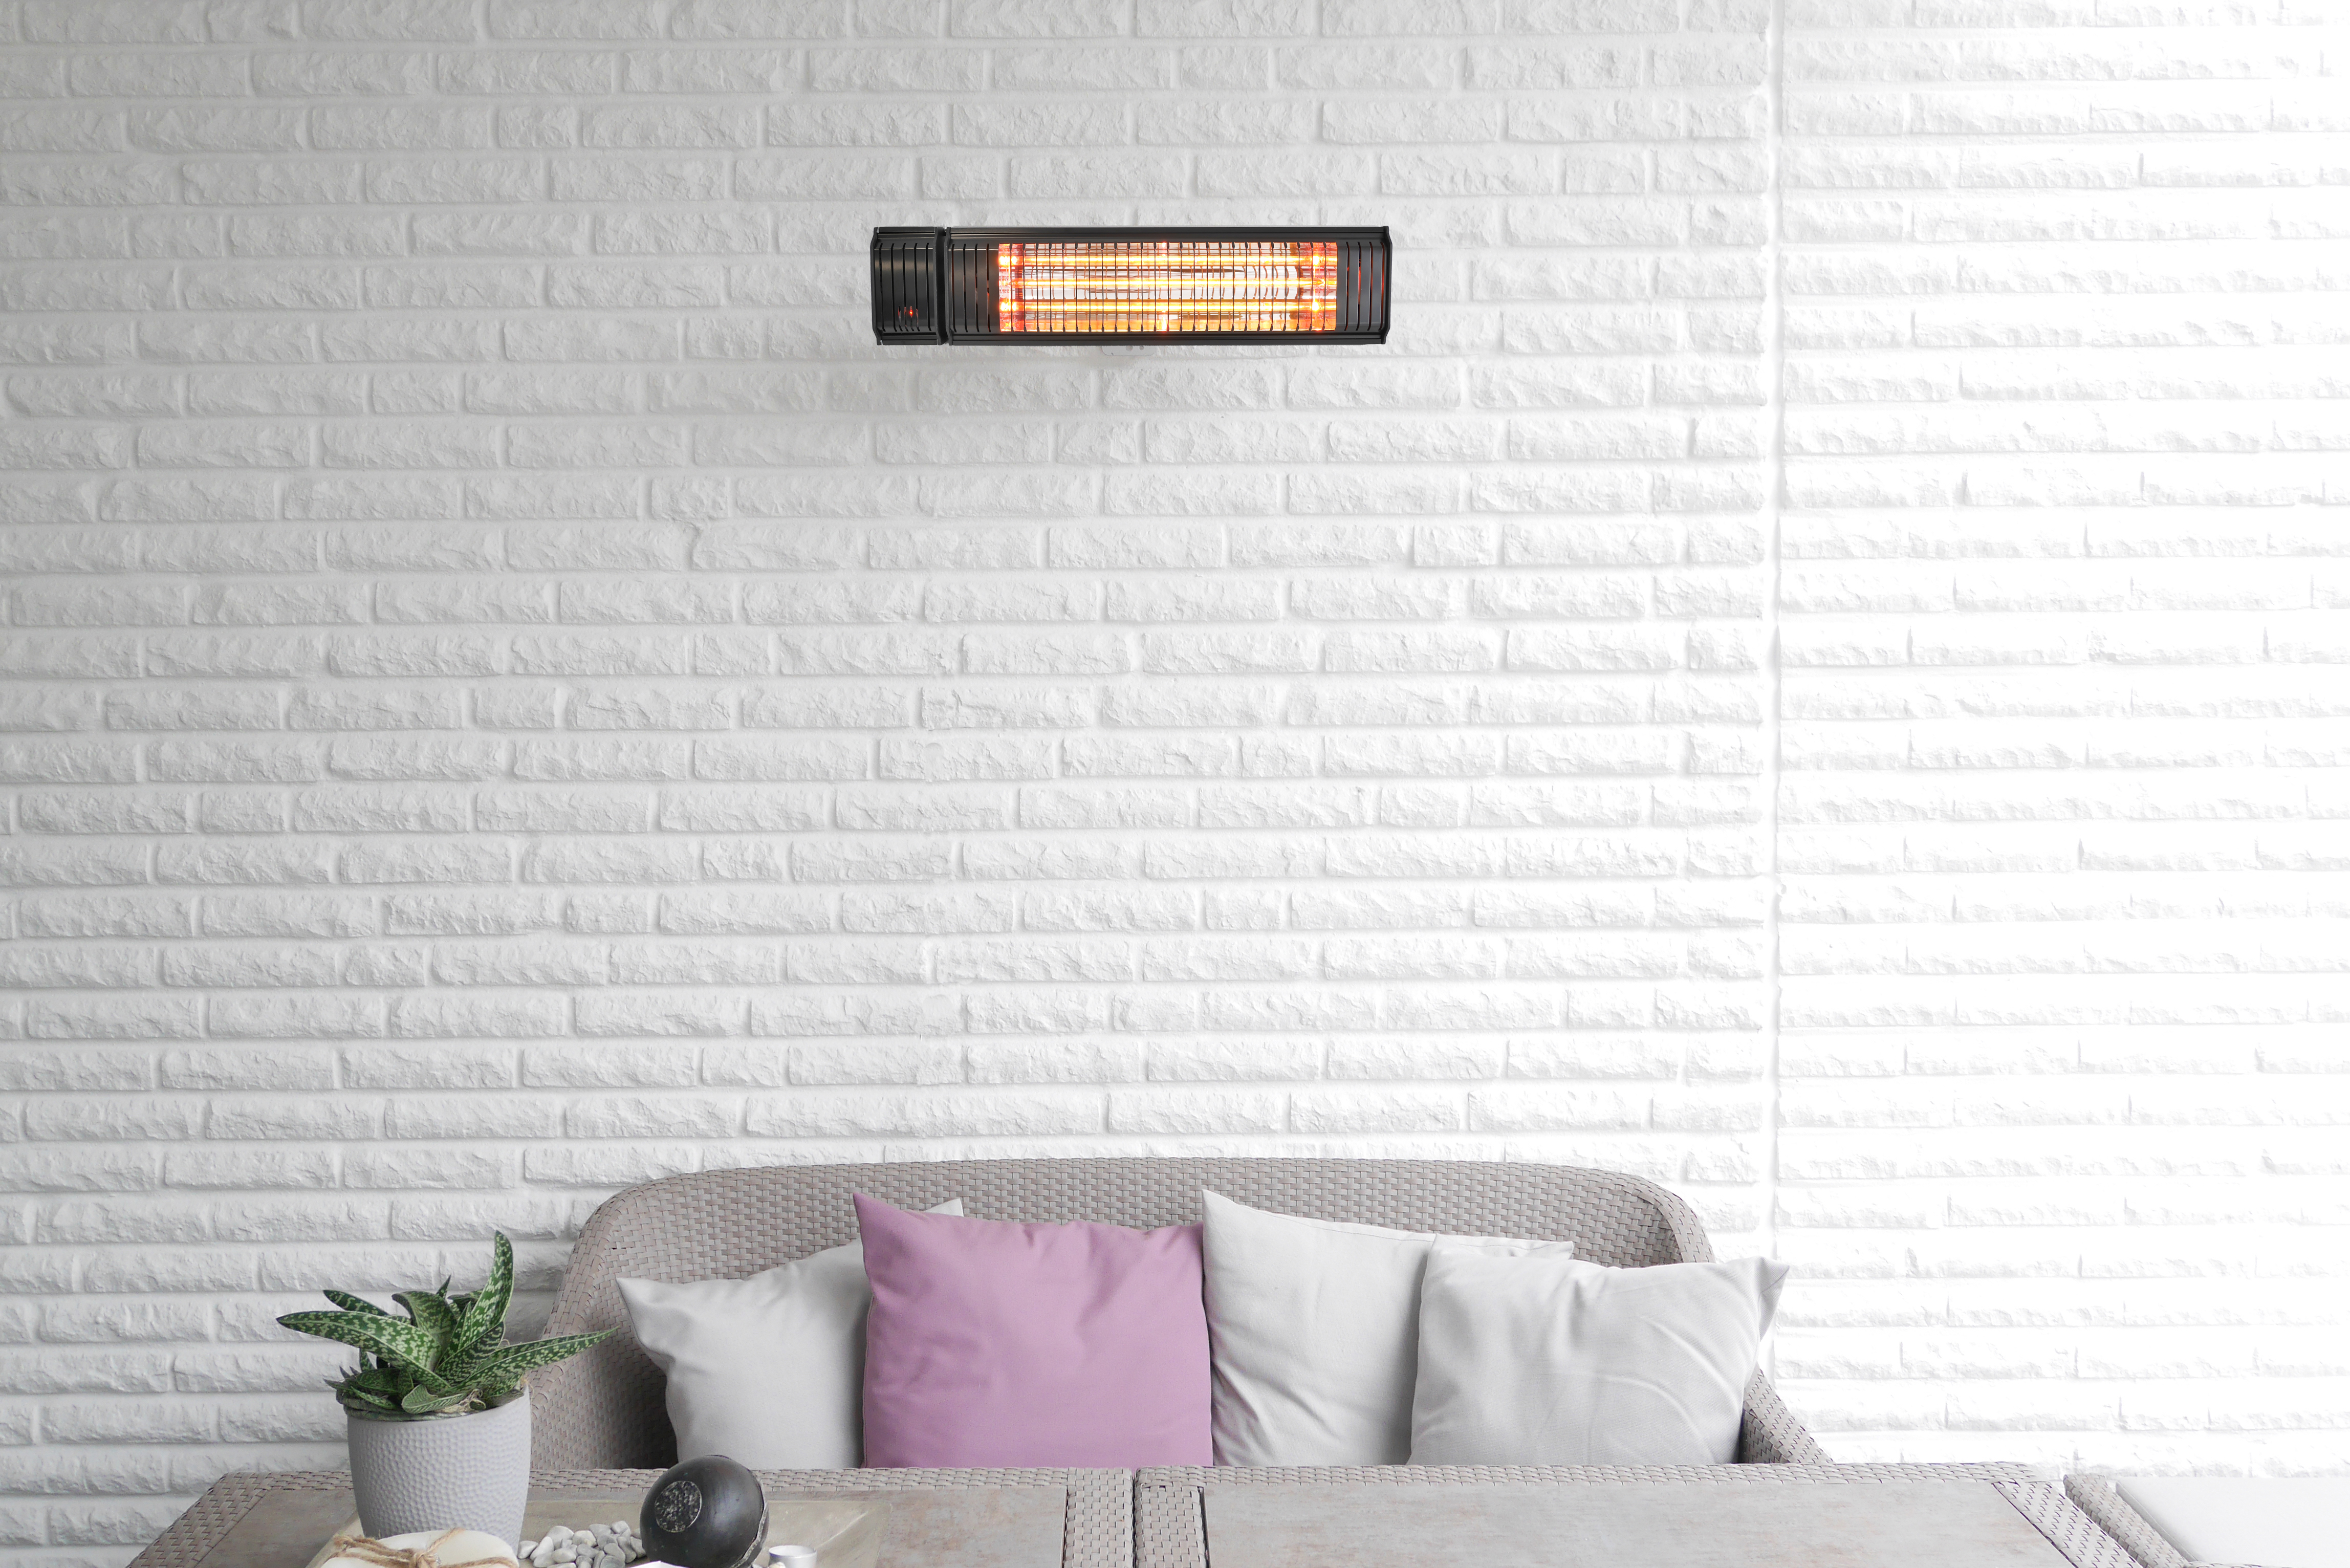 patio-heater-wall-ceiling-for-permanent-installation-mounting